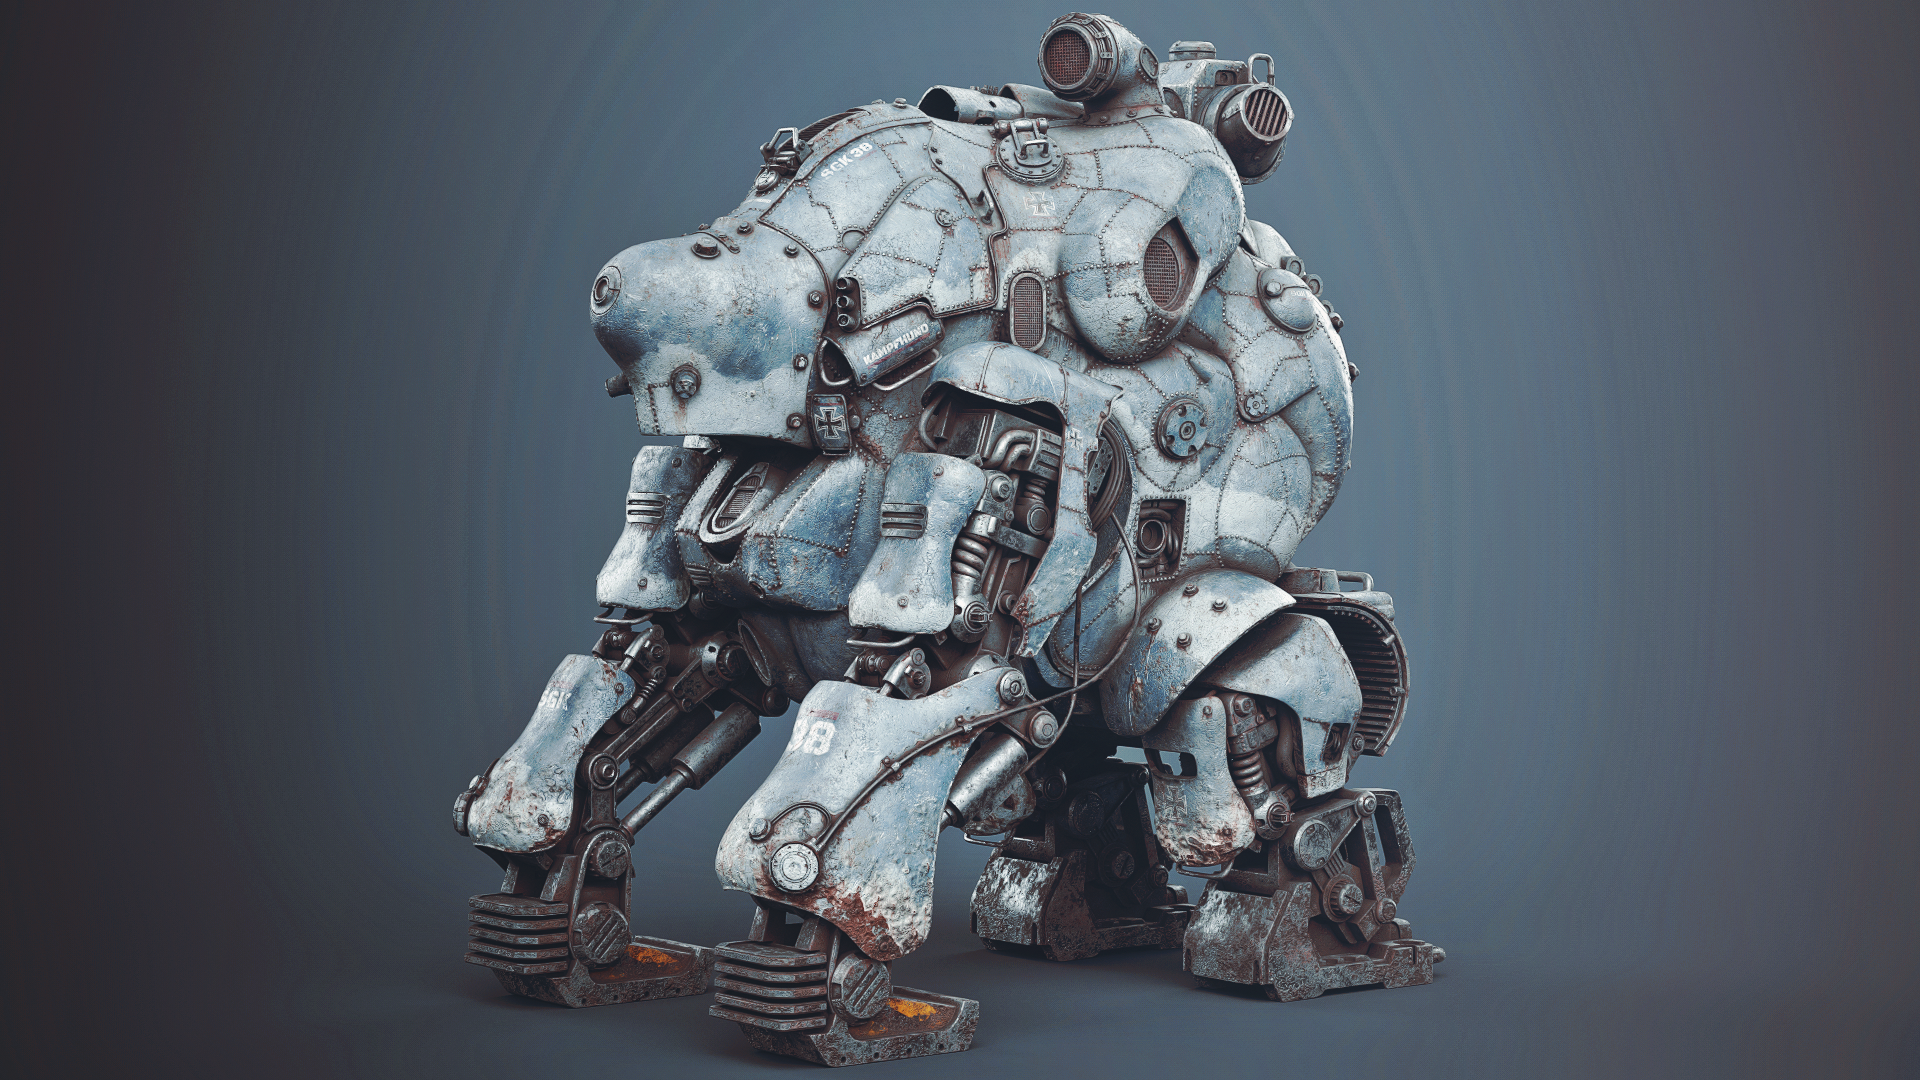 Mech created with the help of Pure Tools 3D